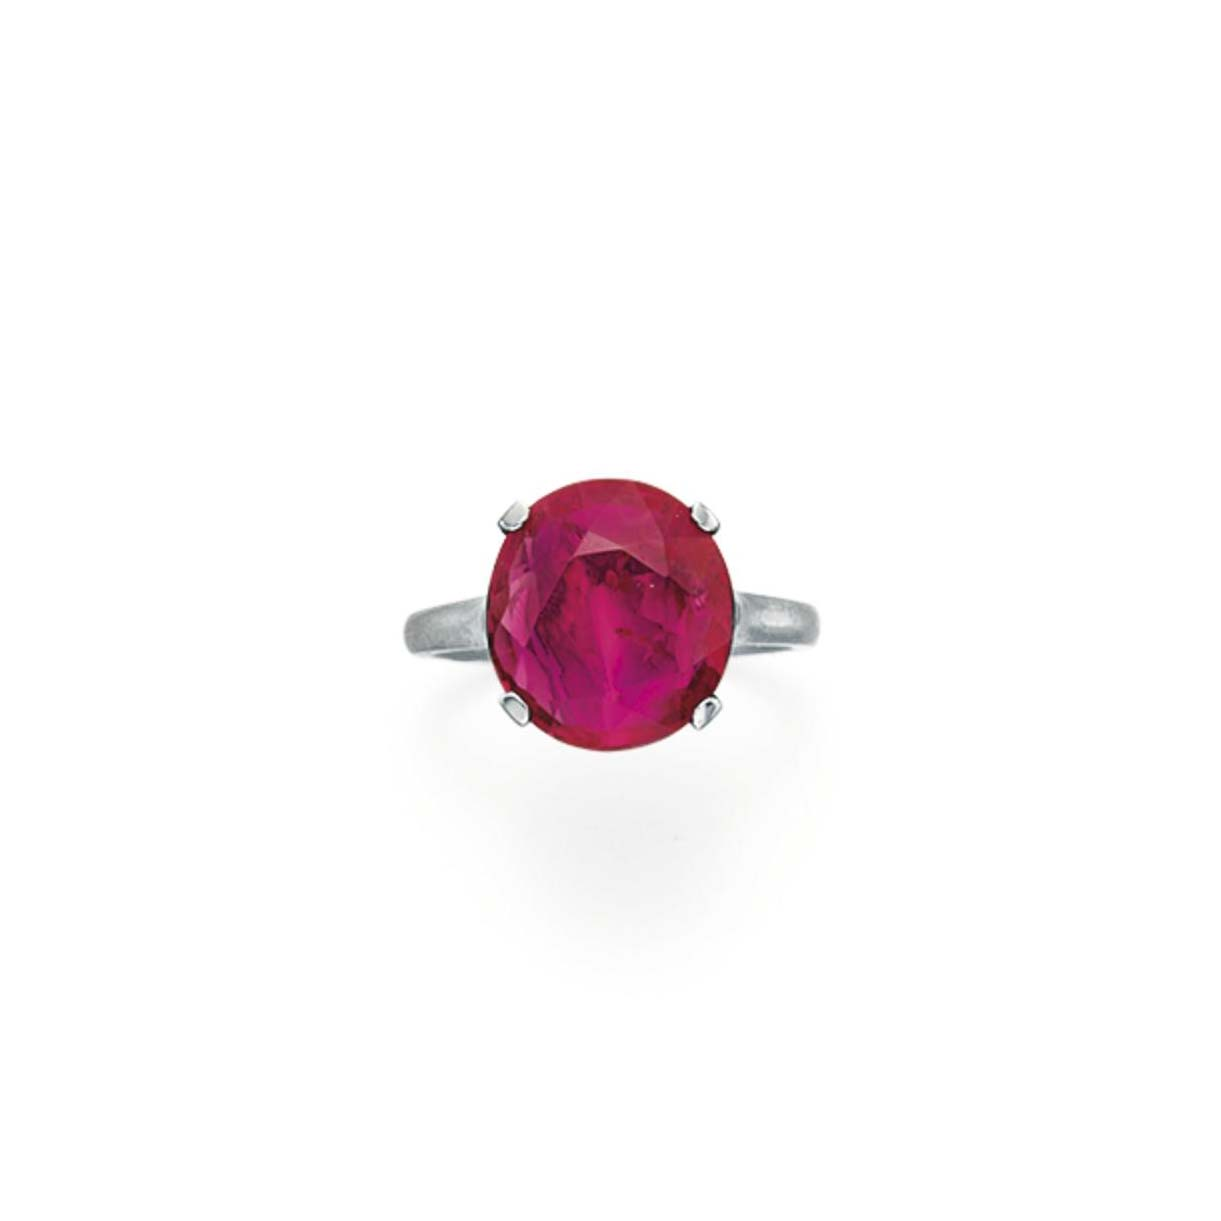 A RUBY RING, BY VERDURA